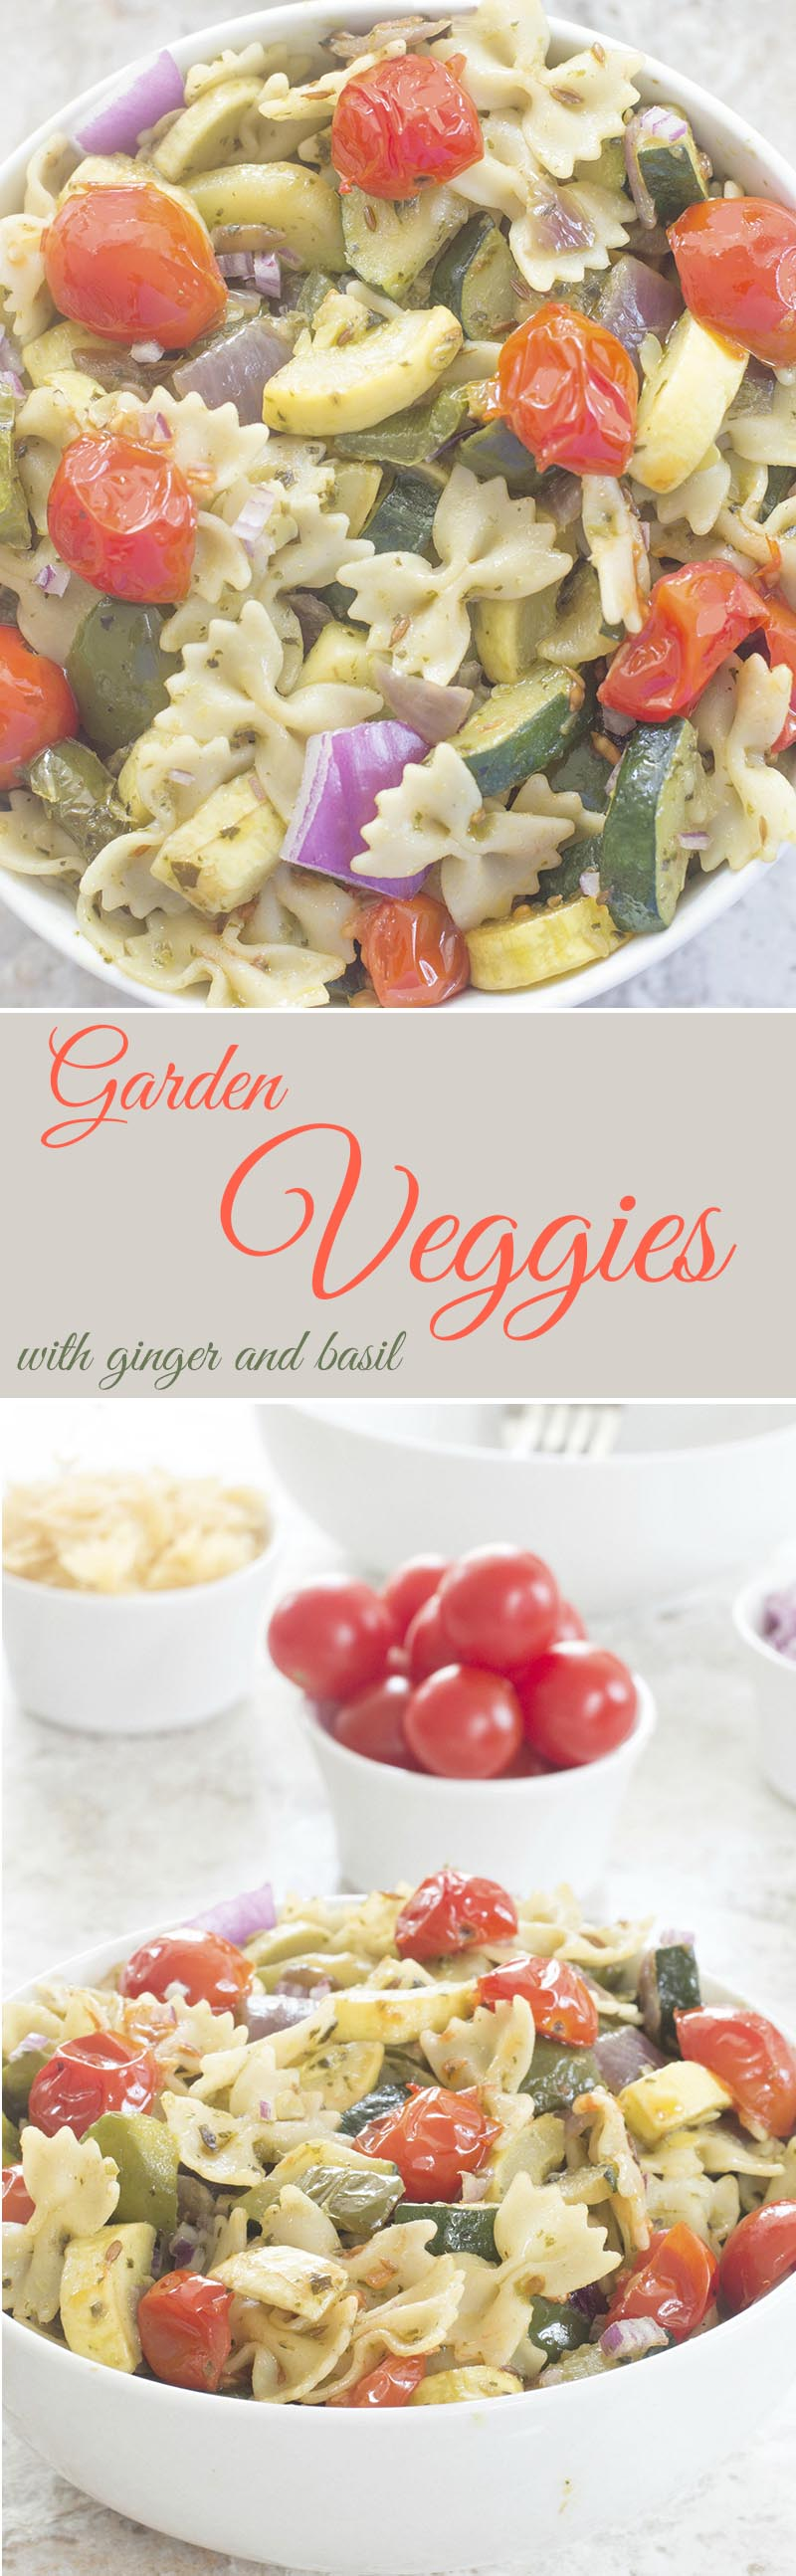 Garden Veggies Pasta made with Dorot Crushed Ginger and Dorot Chopped Basil herb. Quick and easy dinner recipe for vegans, vegetarians and meat eaters.